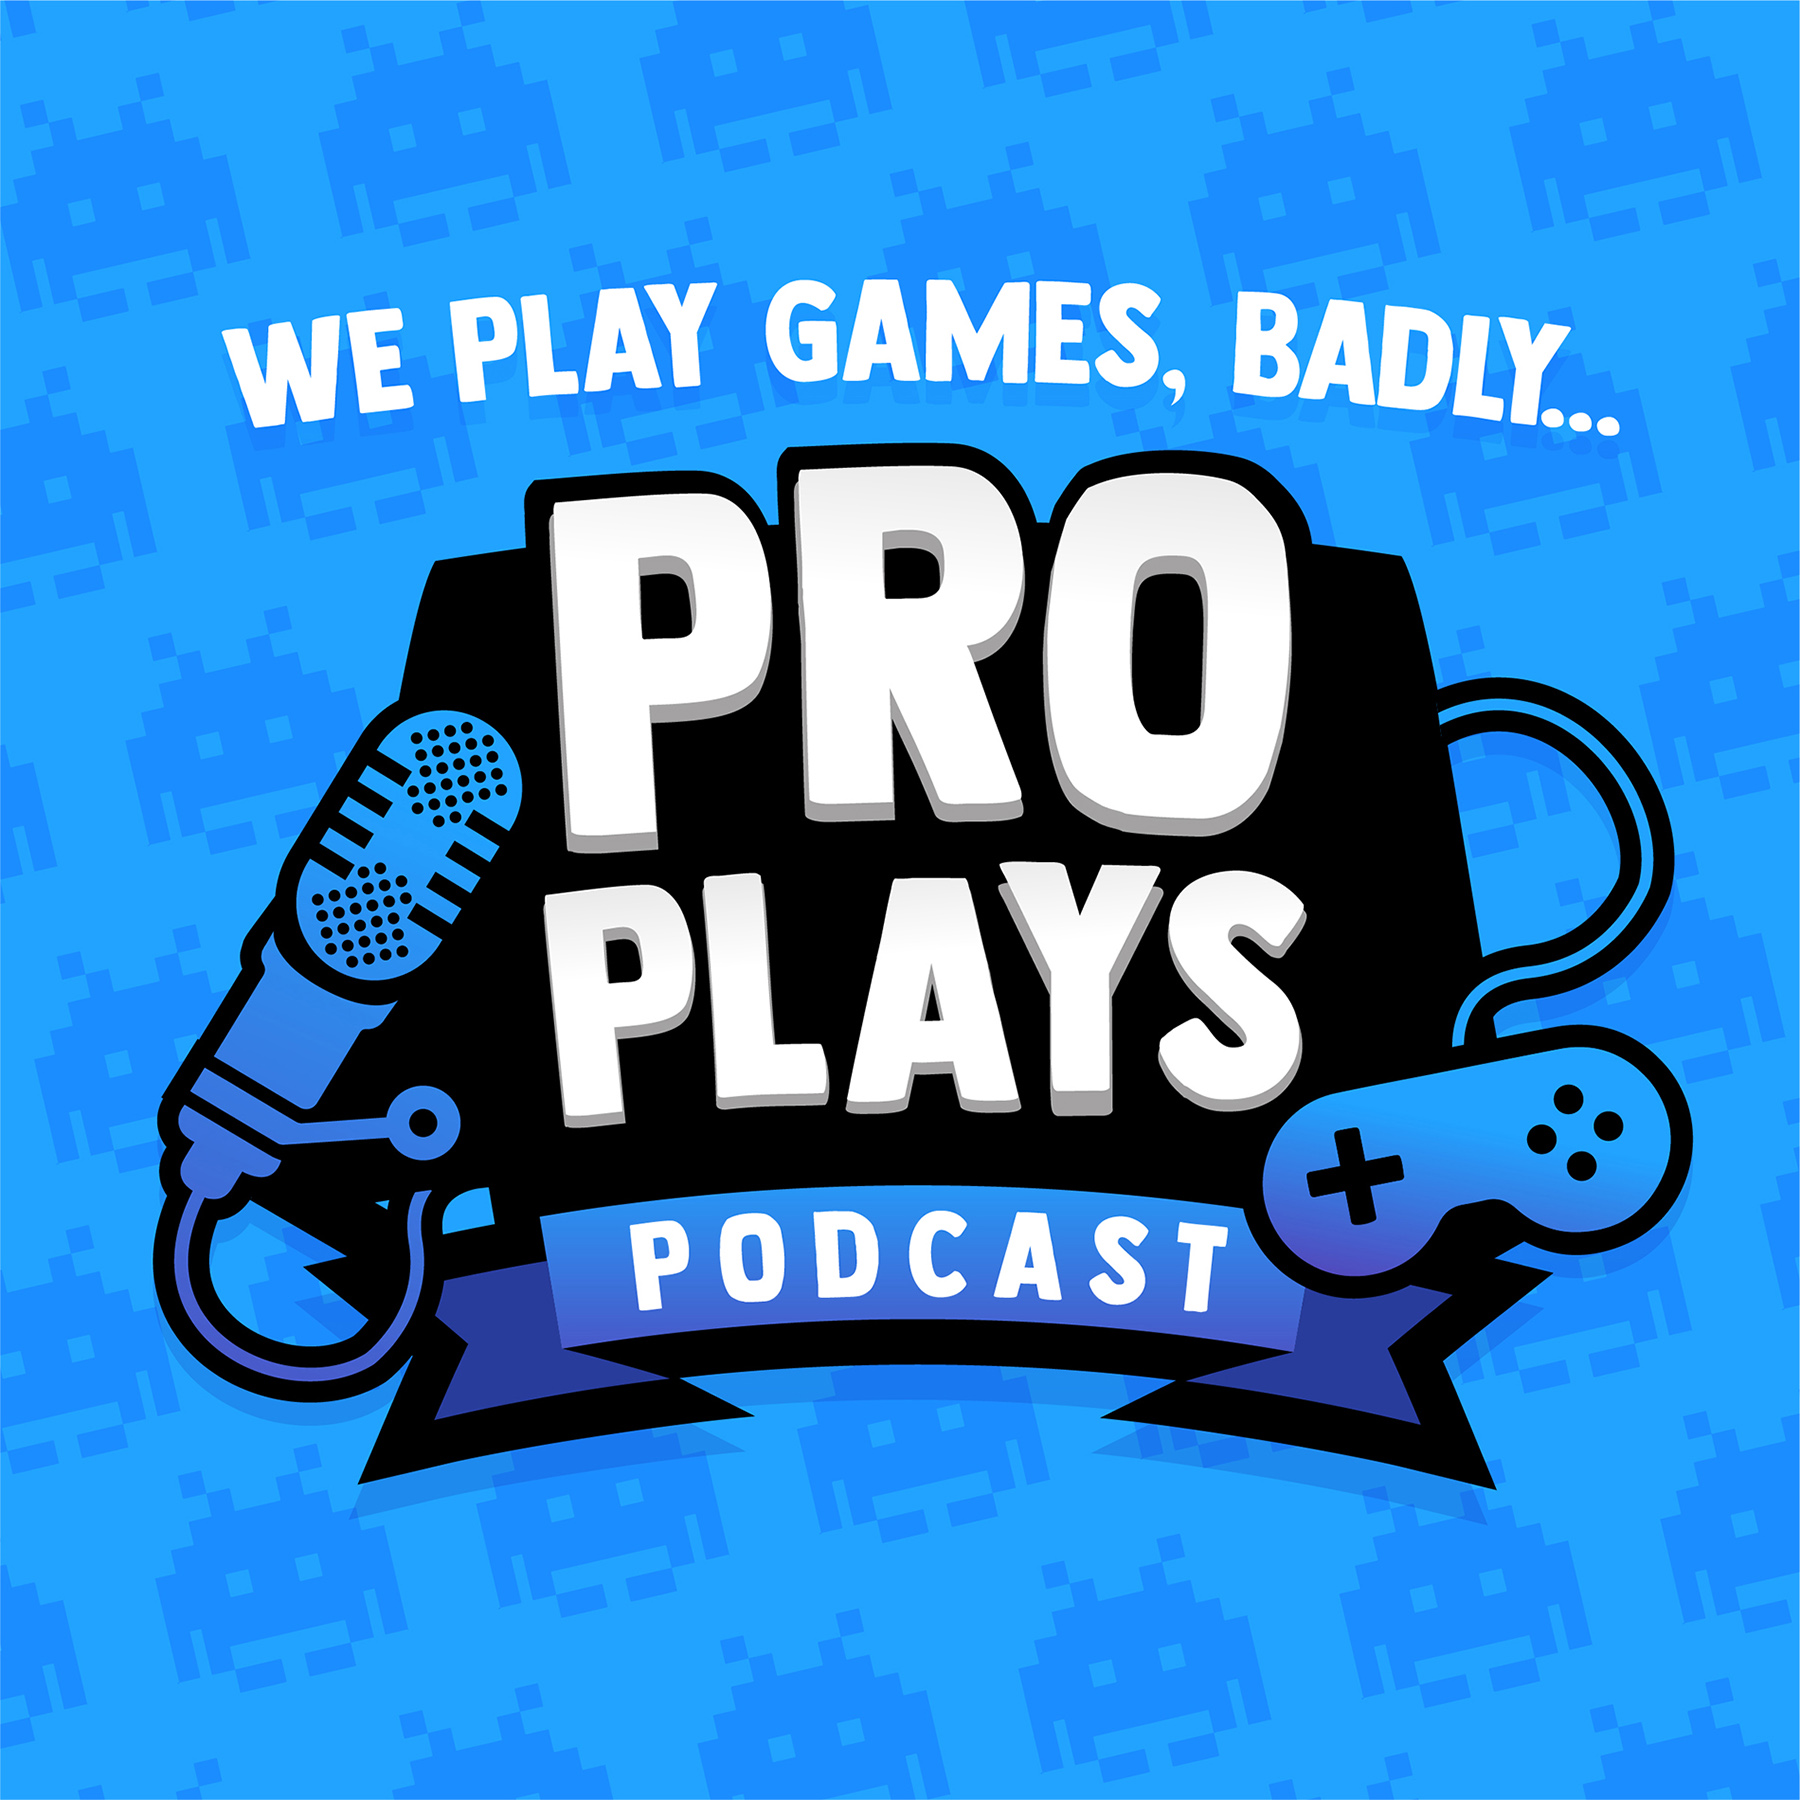 Pro Plays: We play games, badly – Podcast – Podtail